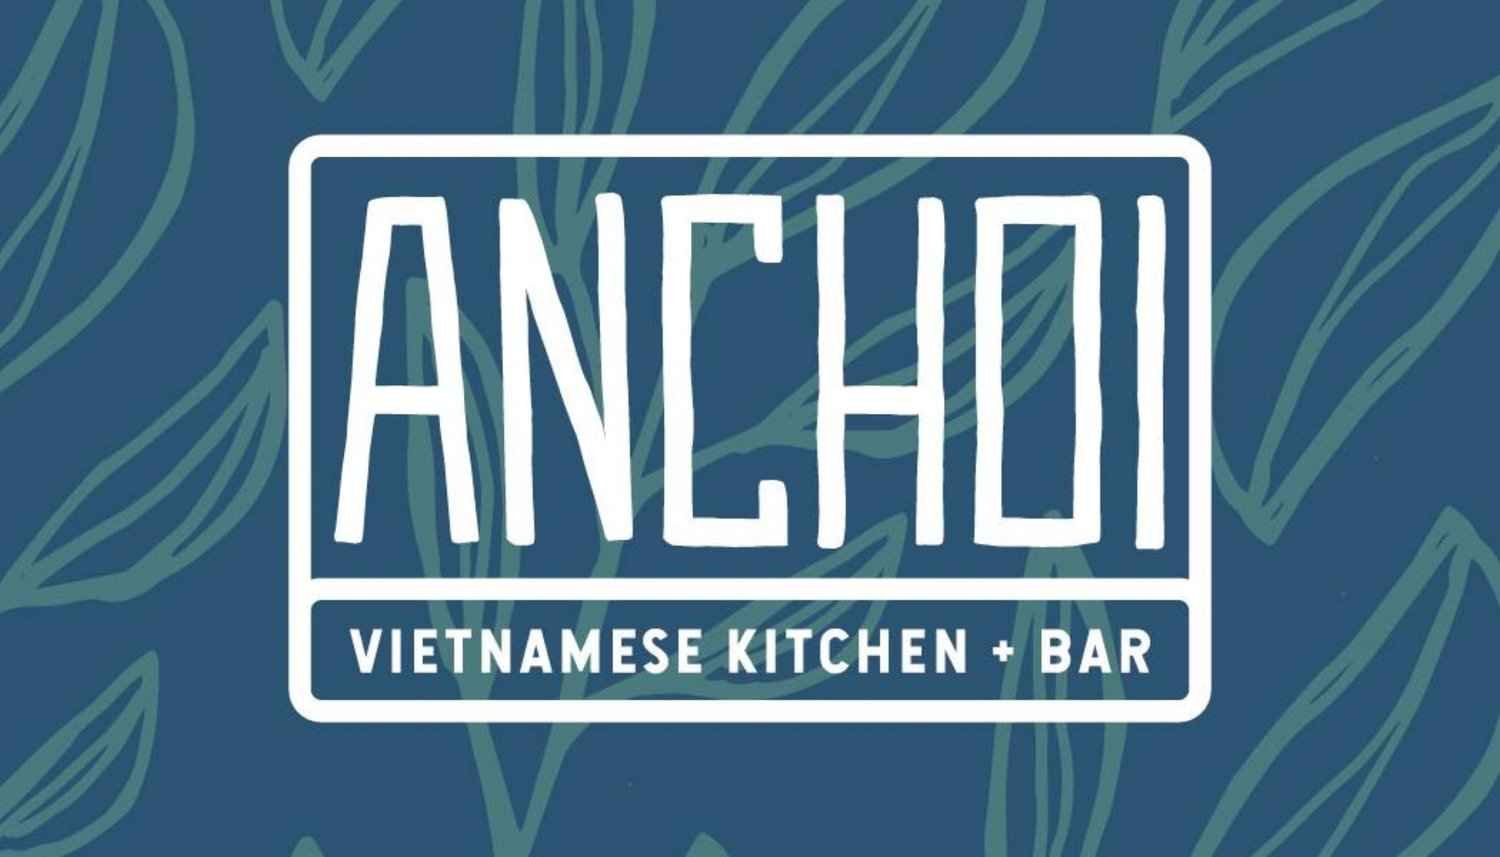 ANCHOI Vietnamese Kitchen + Bar